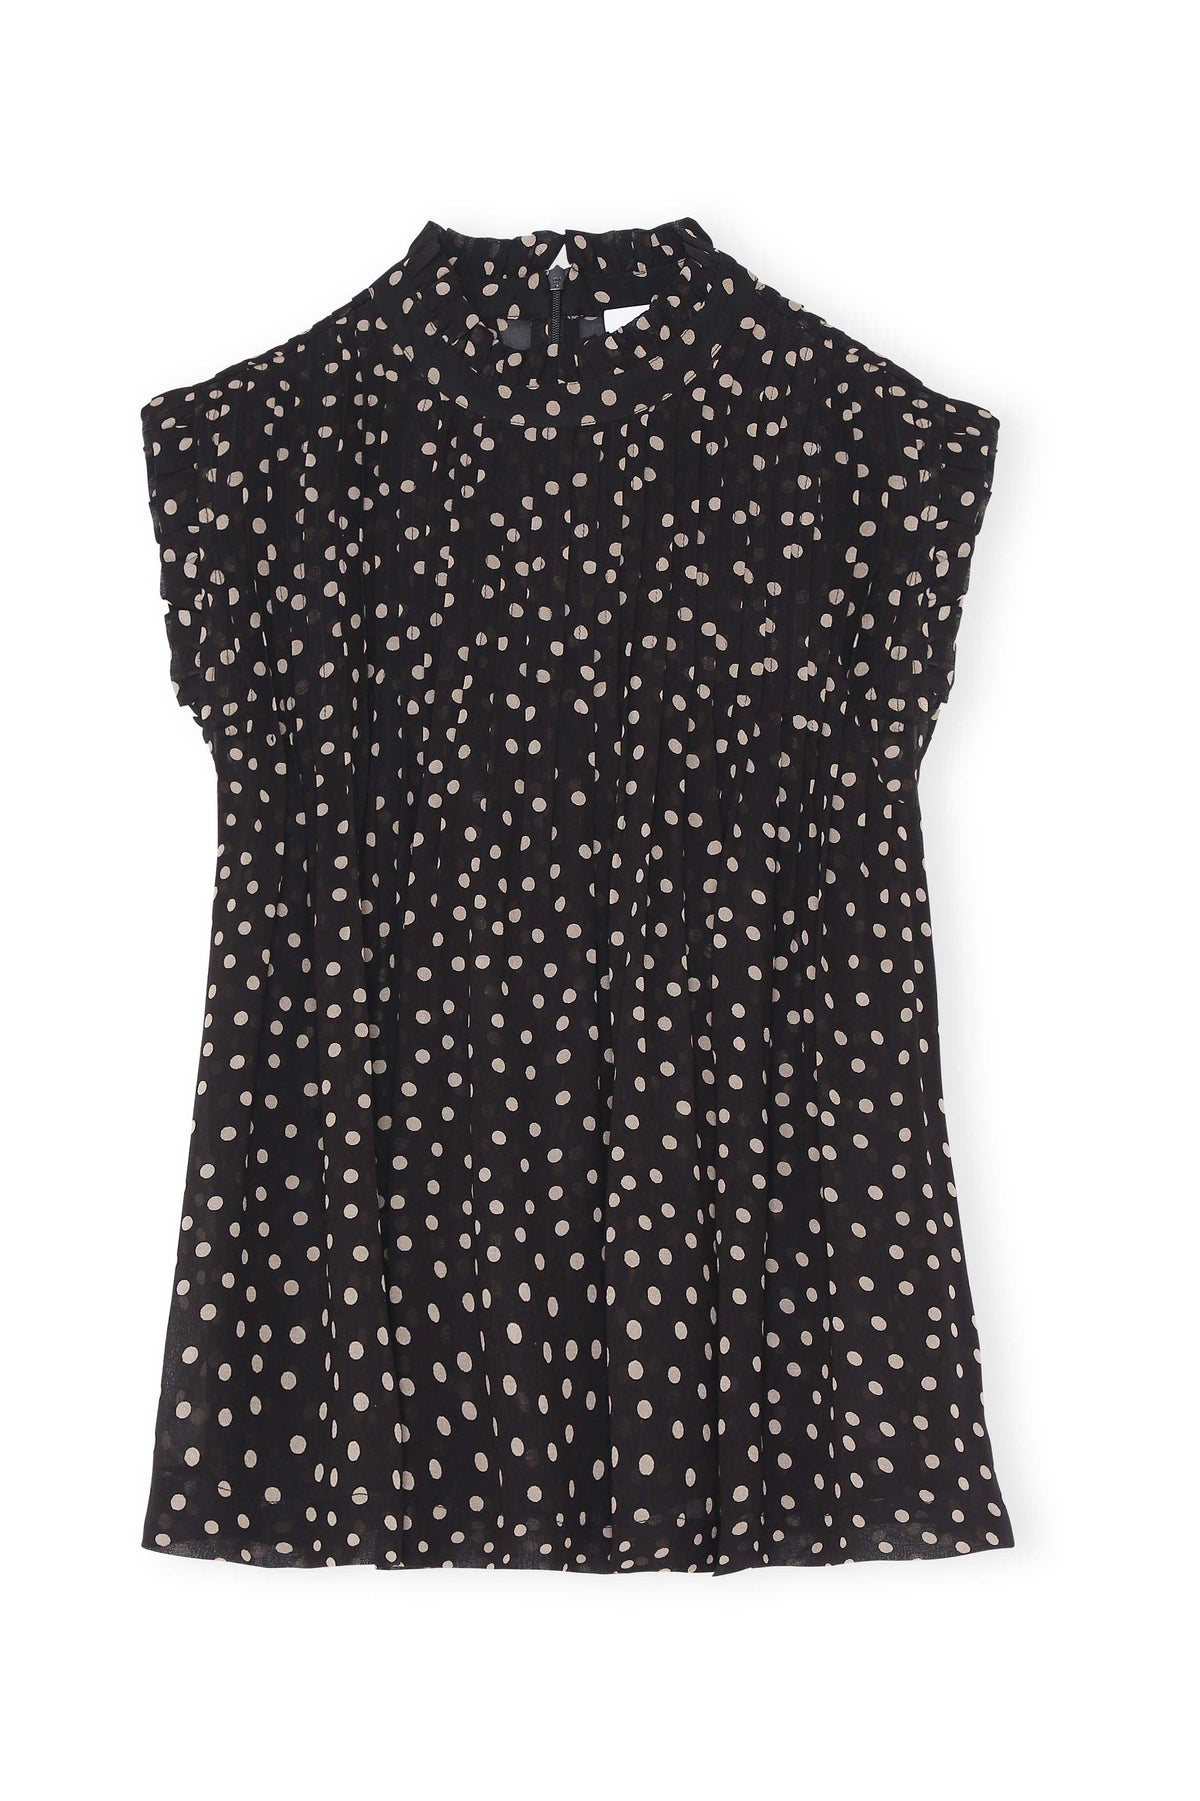 Polka Dot Printed Georgette Top - Black